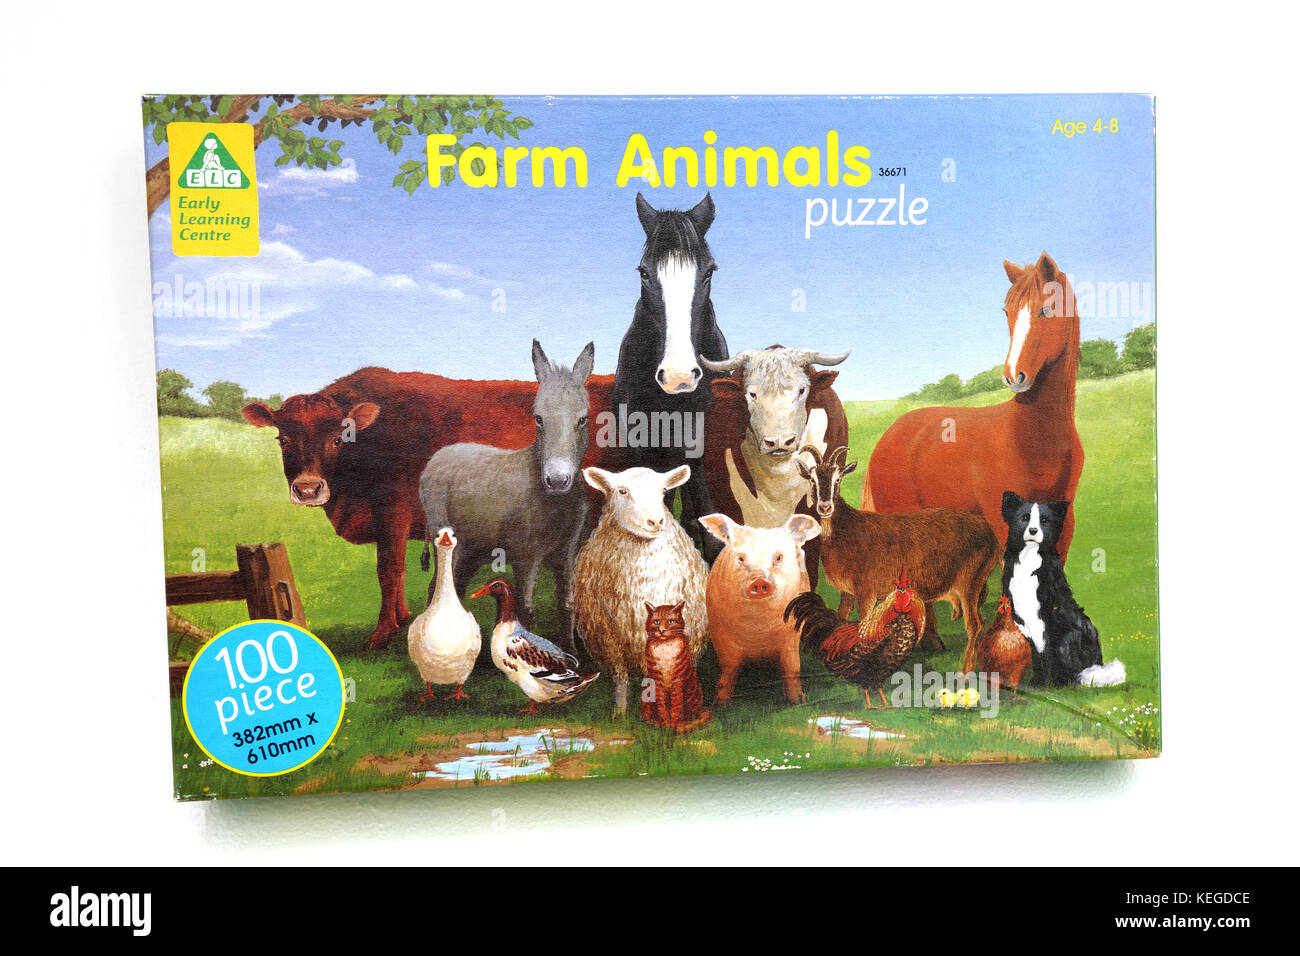 Early Learning Centre Farm Animals Jigsaw Puzzle - Stock Image